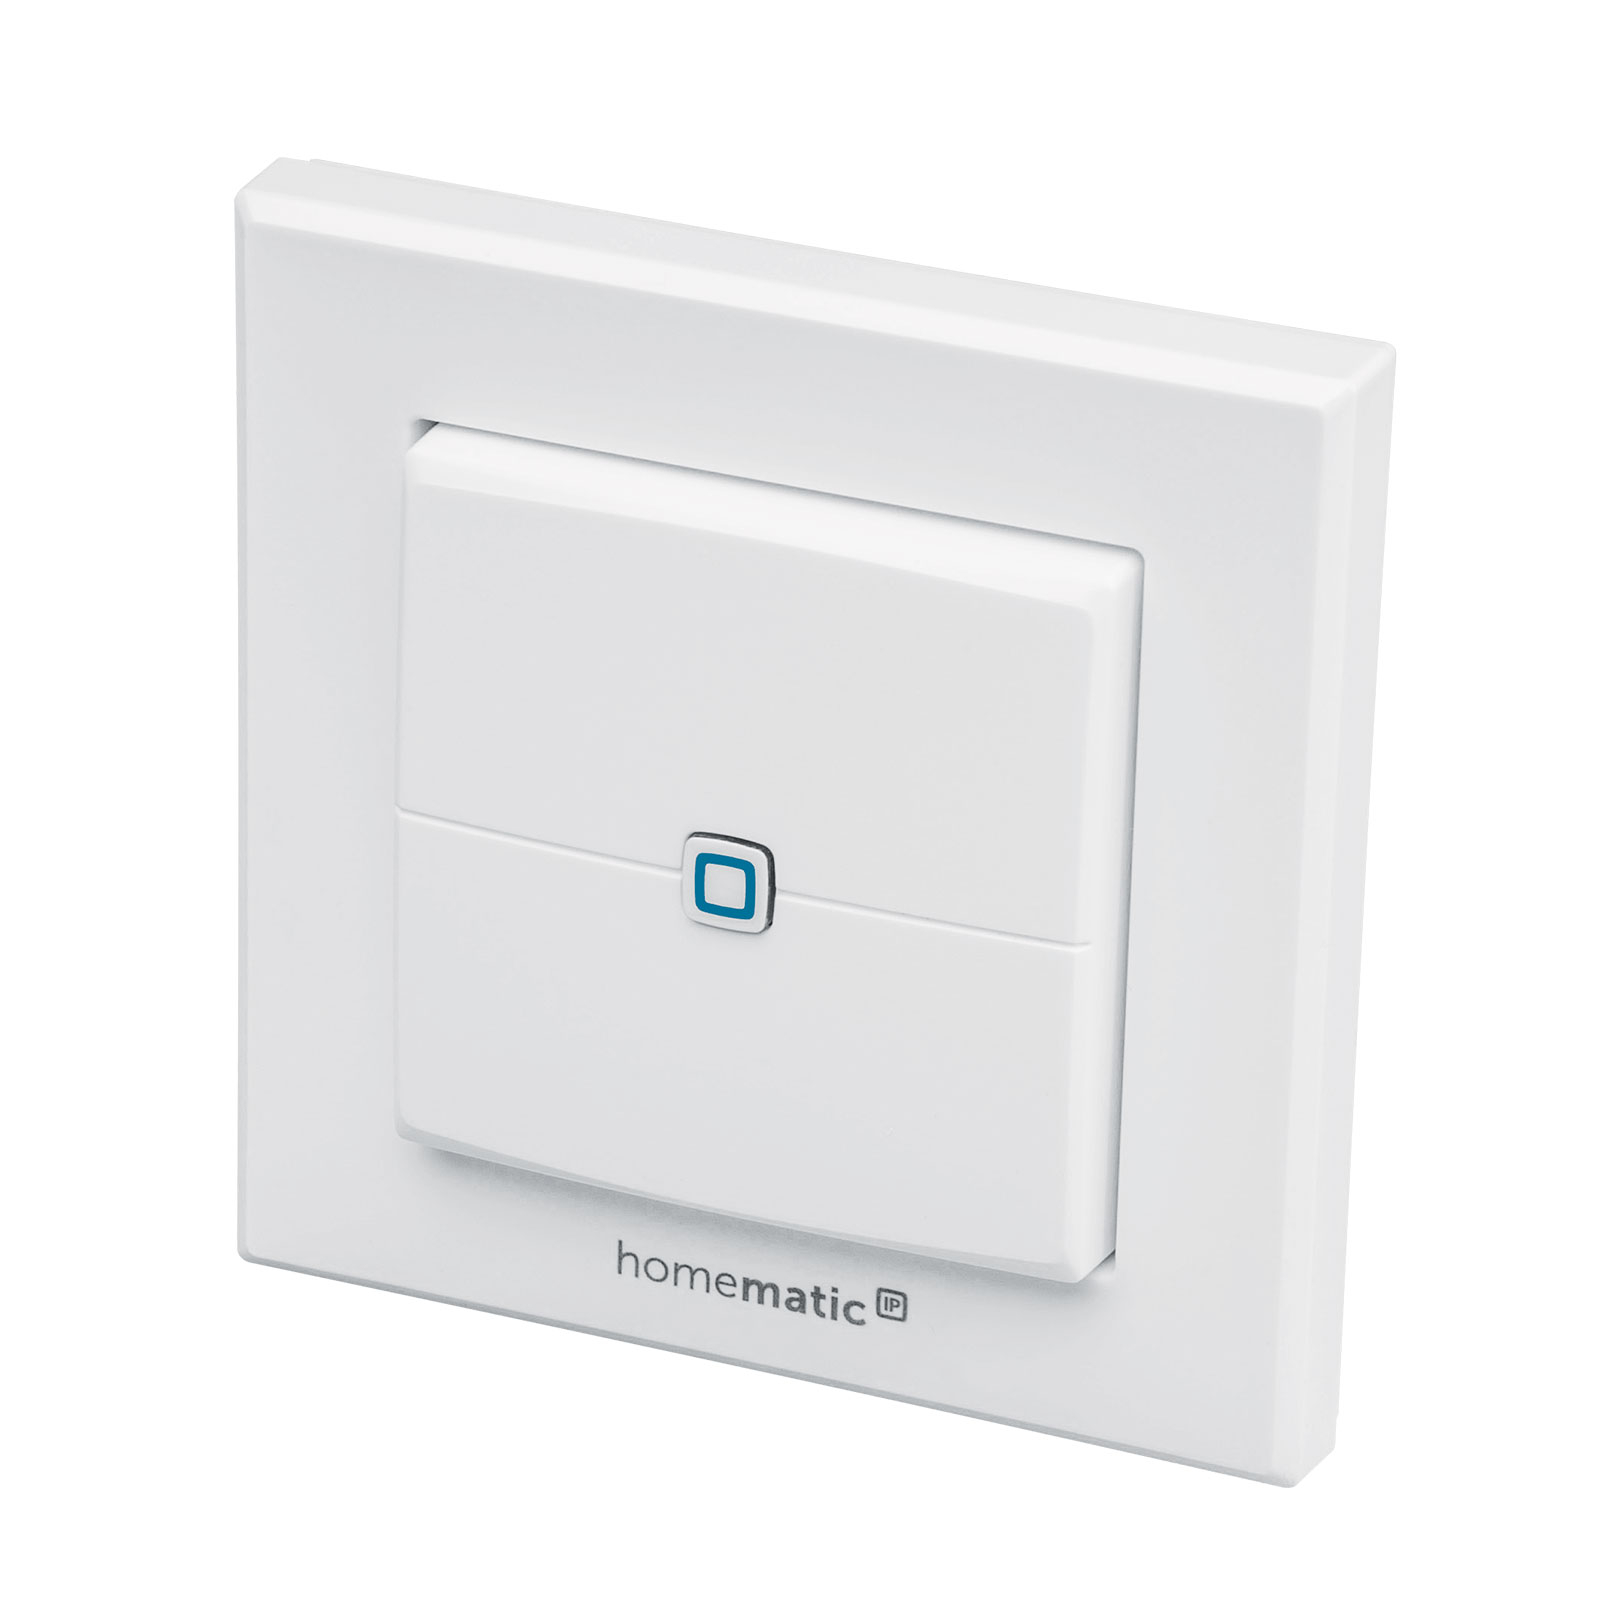 Homematic IP Wandtaster, 2-fach